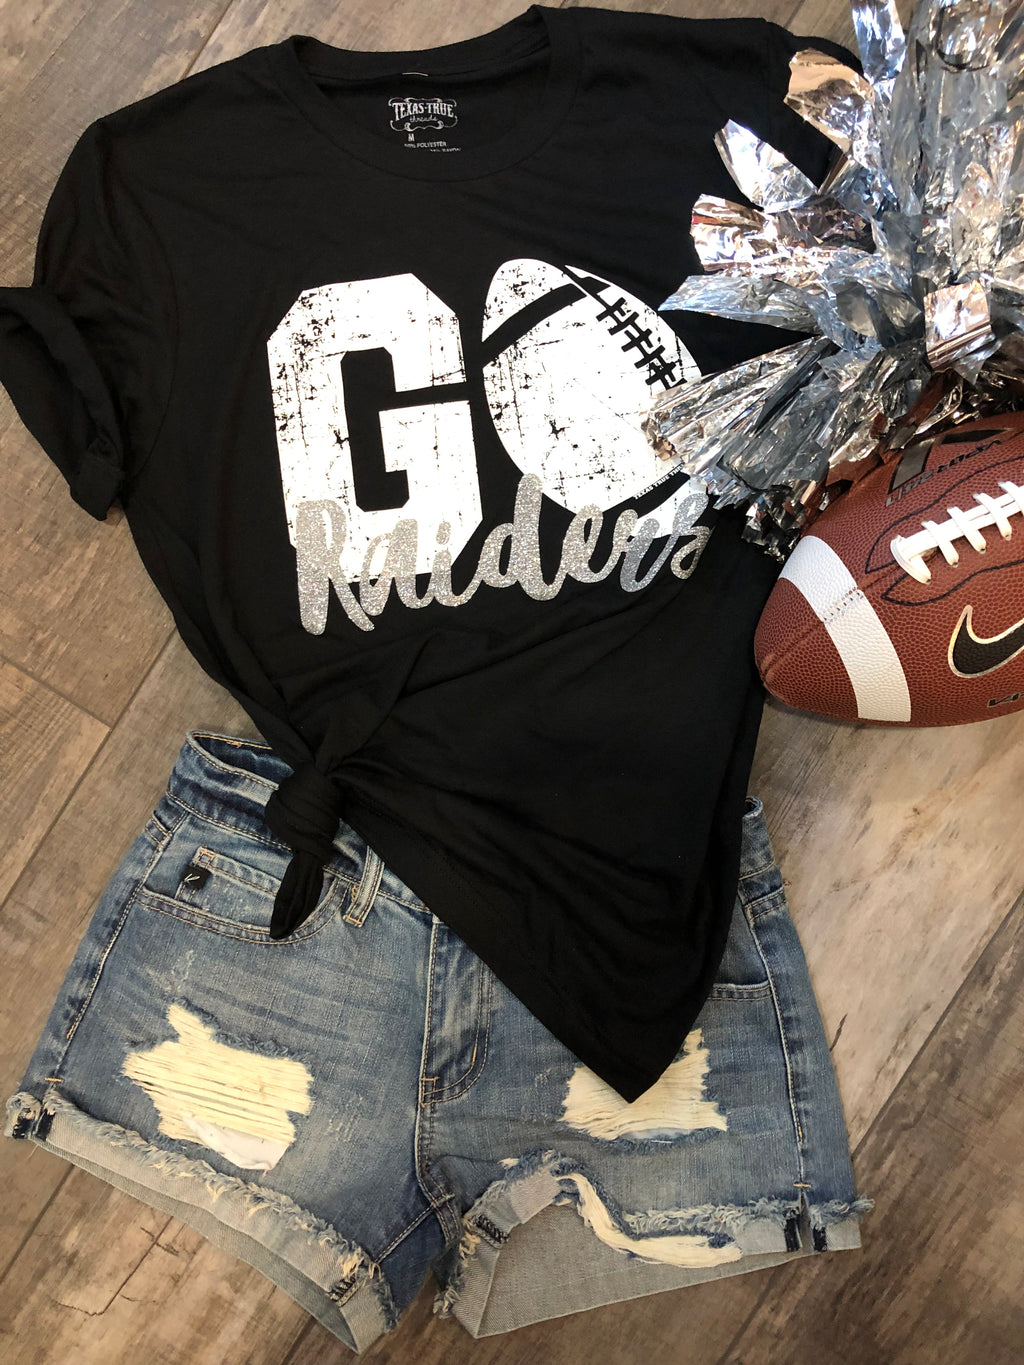 RAIDERS black/silver custom football tee